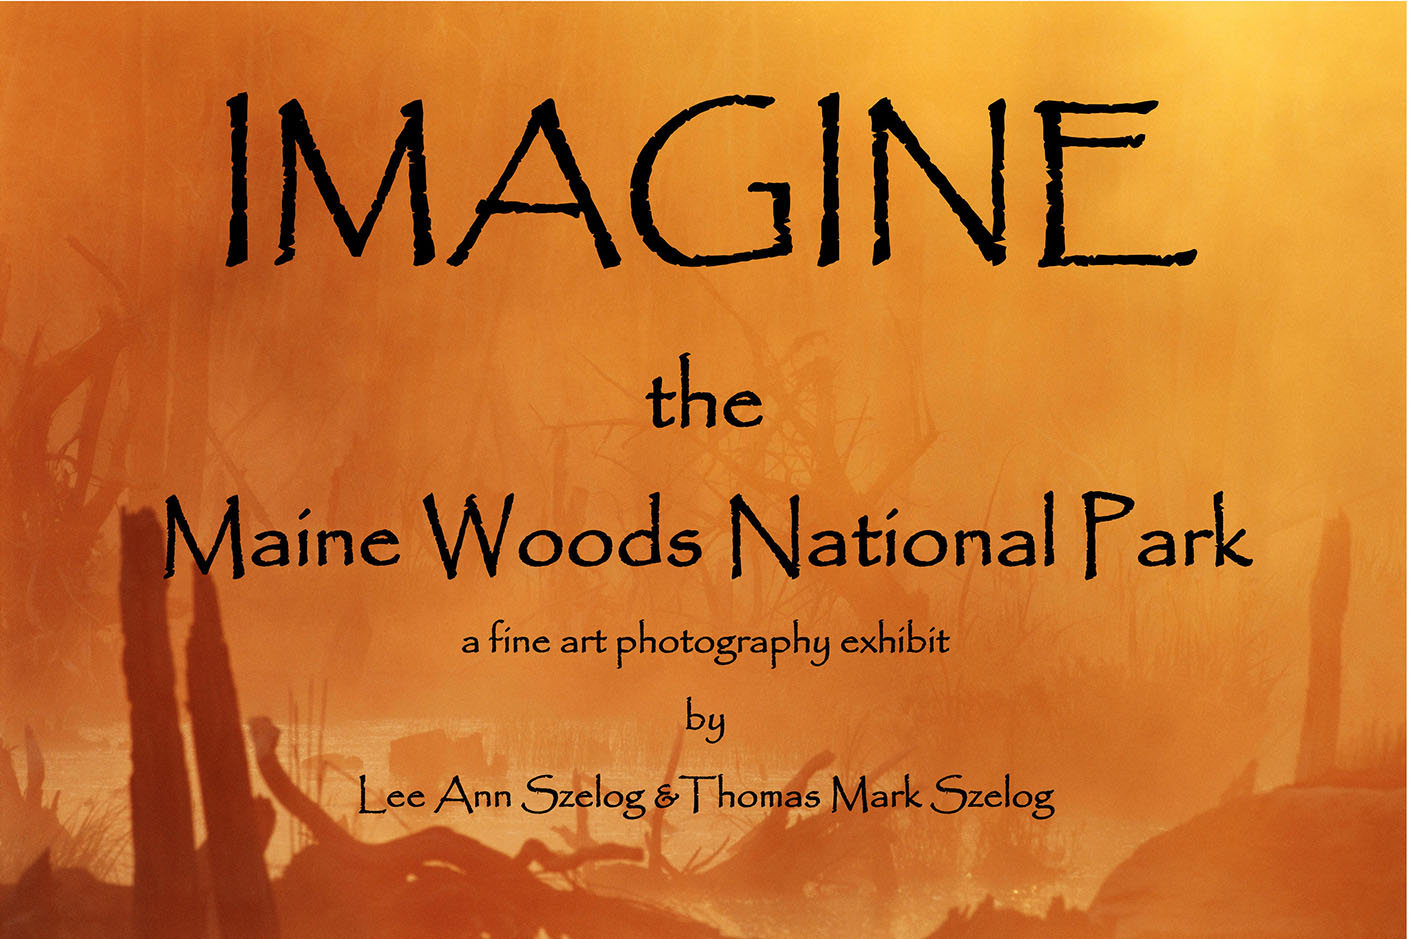 The Maine Woods National Park Photo-Documentation Project